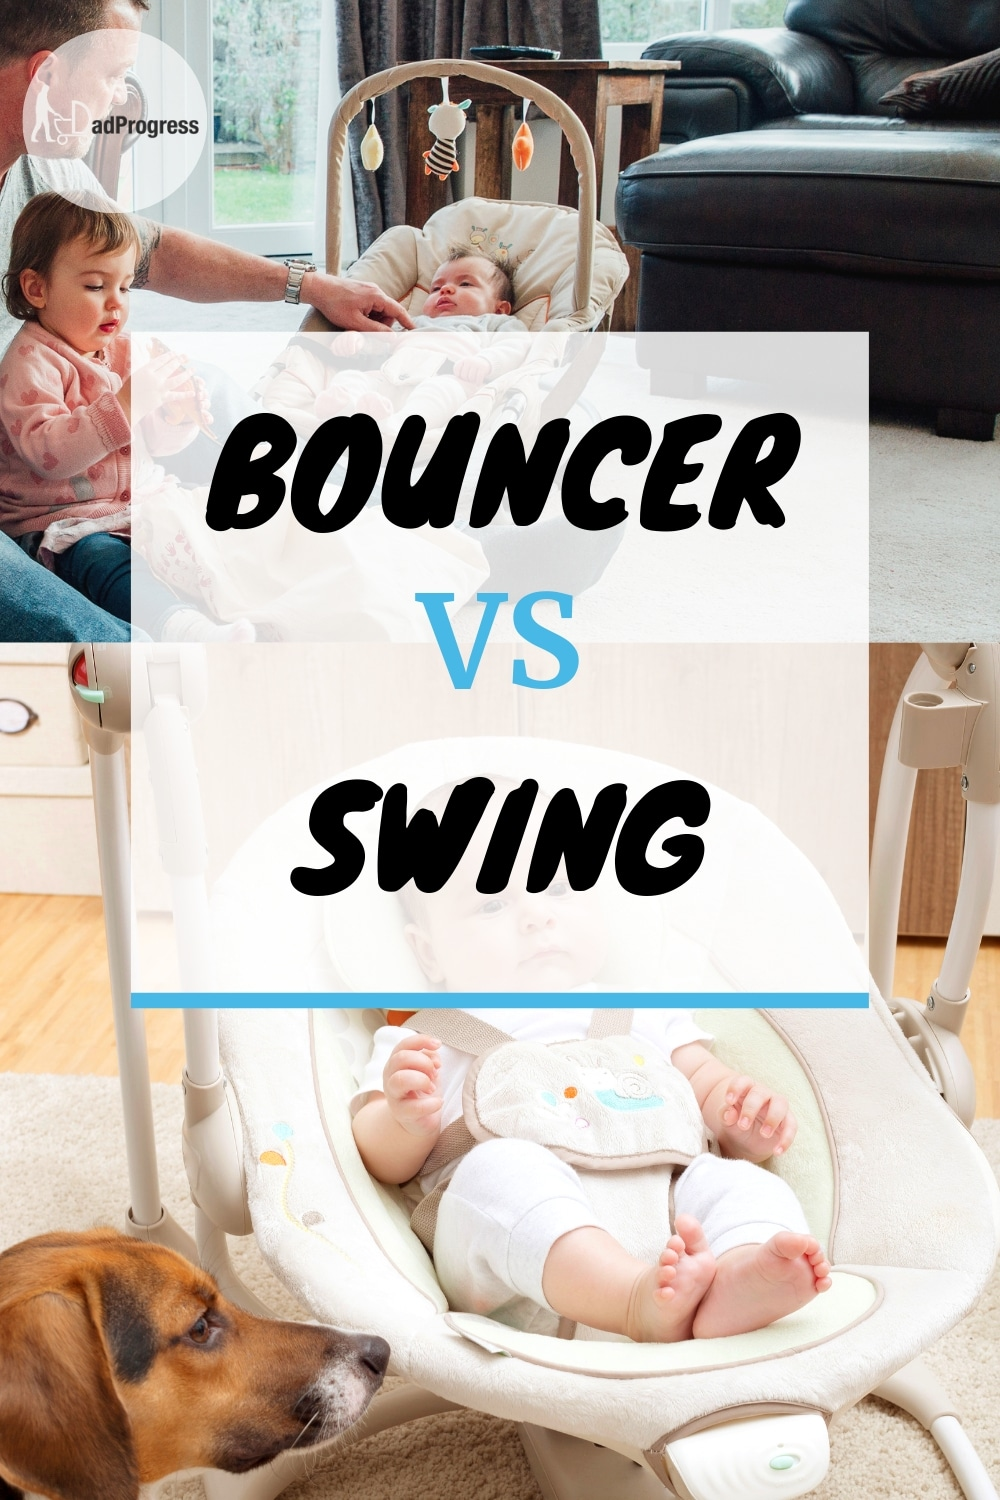 Should you buy the best baby swing or bouncer for your newborn? They are different, but maybe you don't need to buy both of them. Click to read my guide to learn the pros and cons